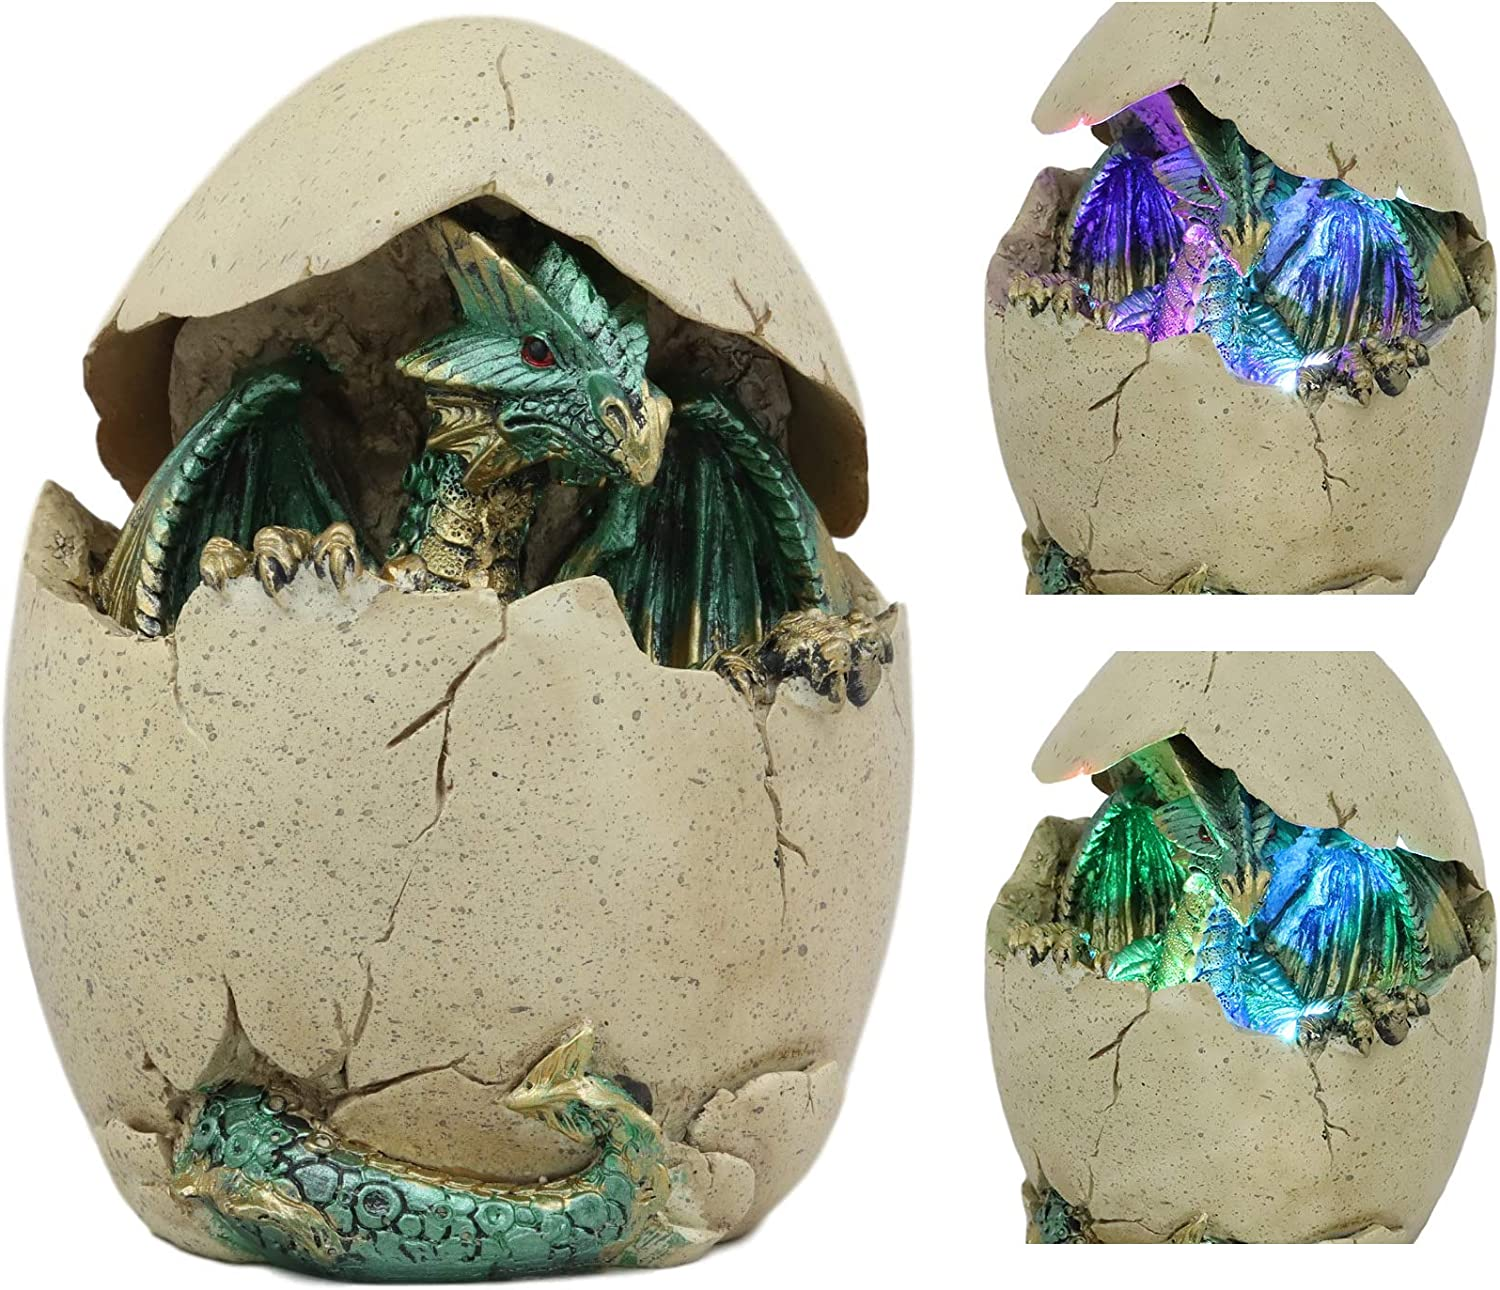 Ebros Emerging Dragon Egg Hatchling with Color Changing LED Night Light Figurine Dragonling Wyrmling Dungeons and Dragons Decor Statues and Figurines Renaissance Medieval Fantasy Creature